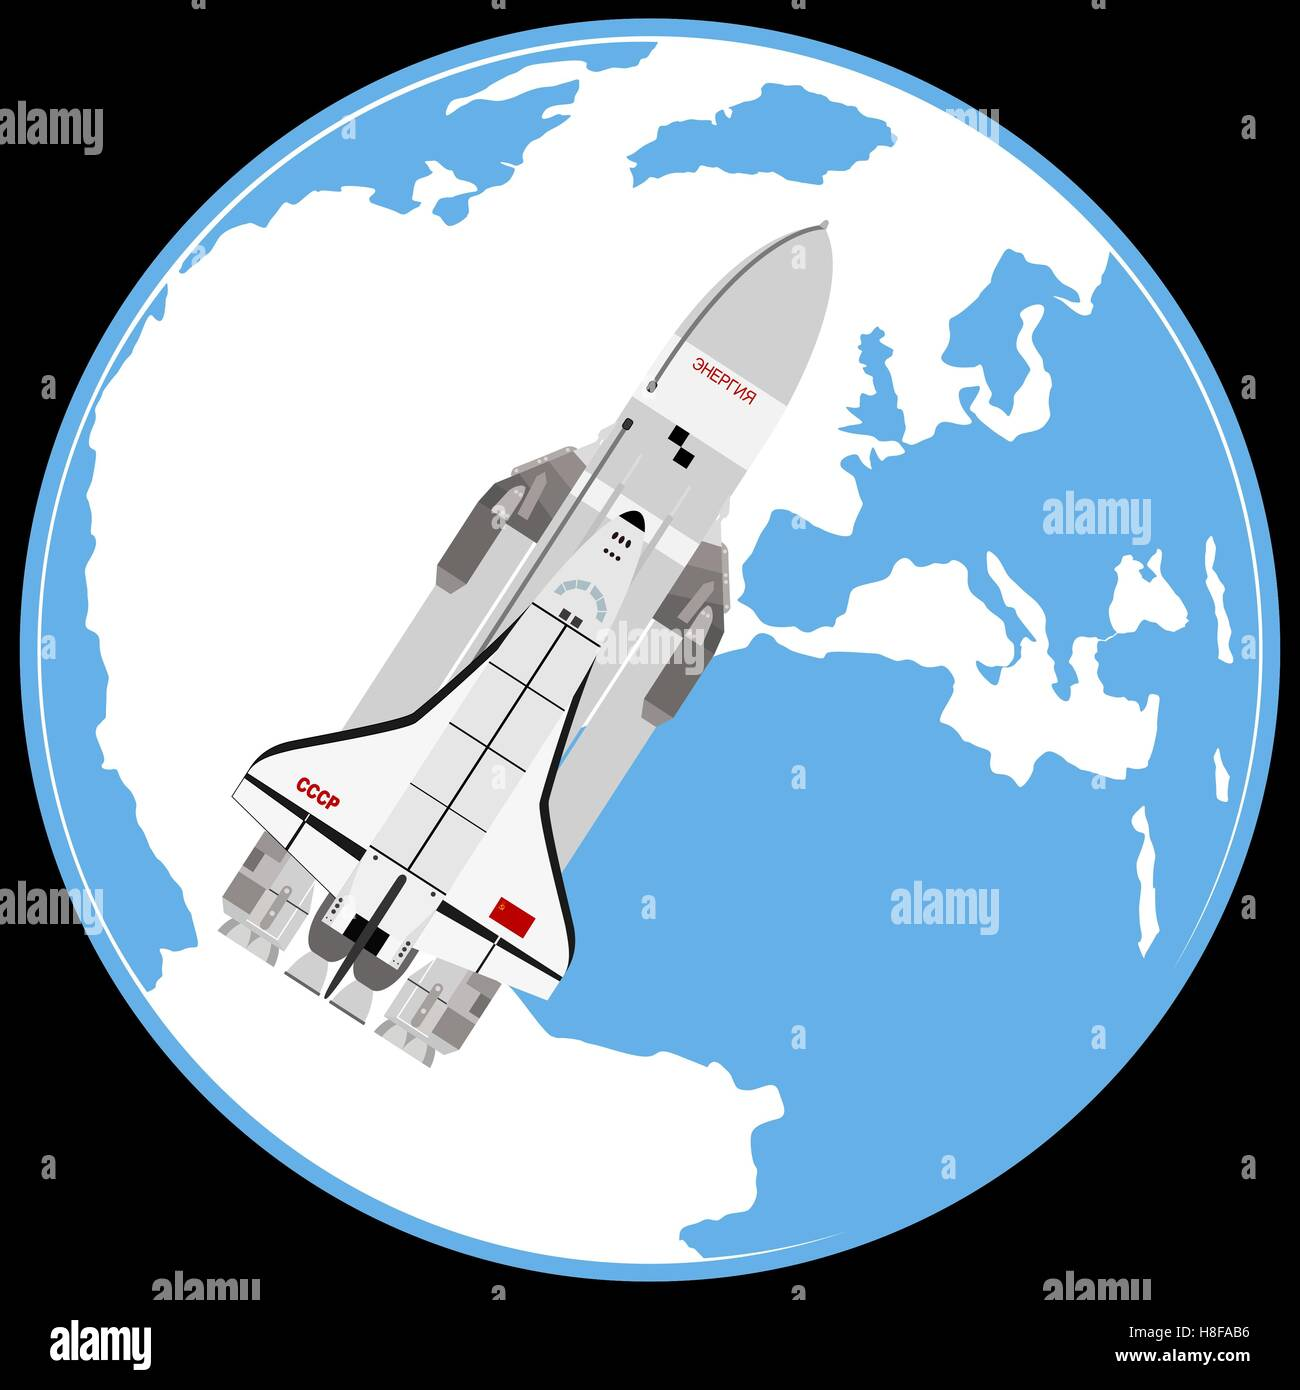 Multi-purpose aerospace system 'Buran' on the background of the Earth. The illustration on a white background. - Stock Image